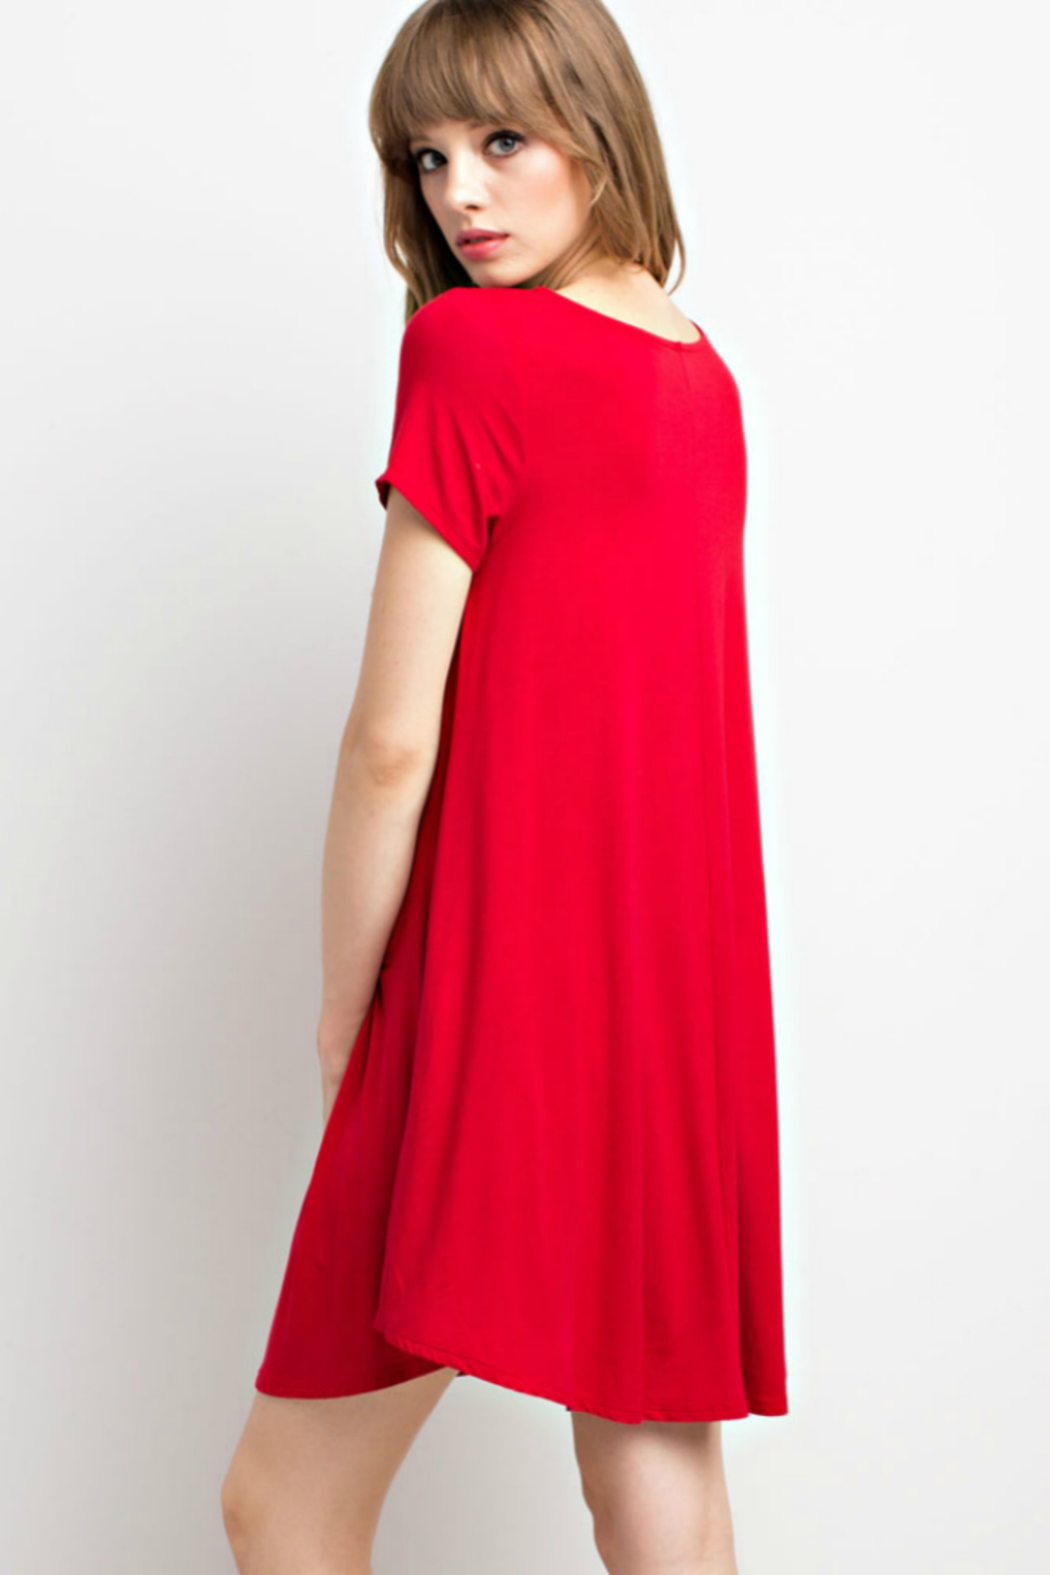 Find great deals on eBay for red t shirt dress. Shop with confidence.